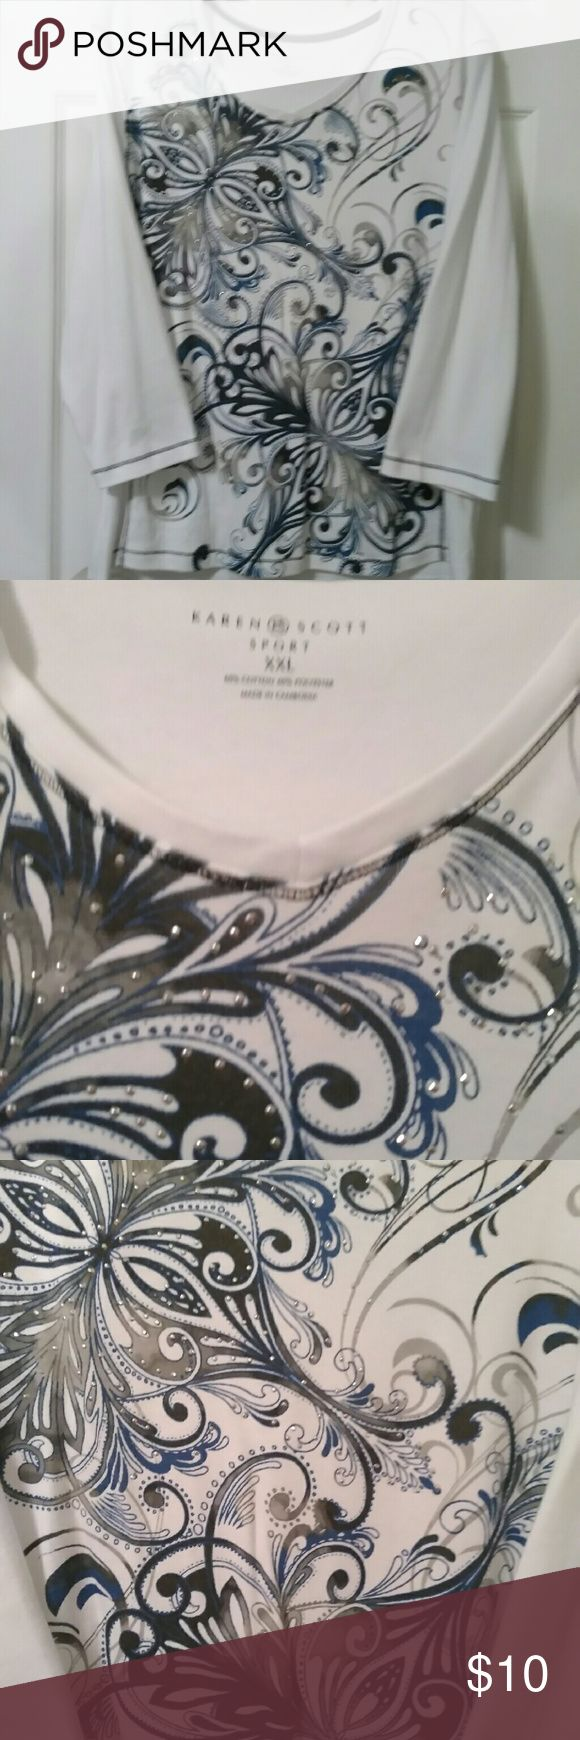 CLEARANCE!!!  Karen Scott Sport Top Swirling design with a touch of bling. Blues, grays and black in a white back ground. Chest is 23 inches. Like new, 3/4 sleeves. Karen Scott Sport Tops Blouses